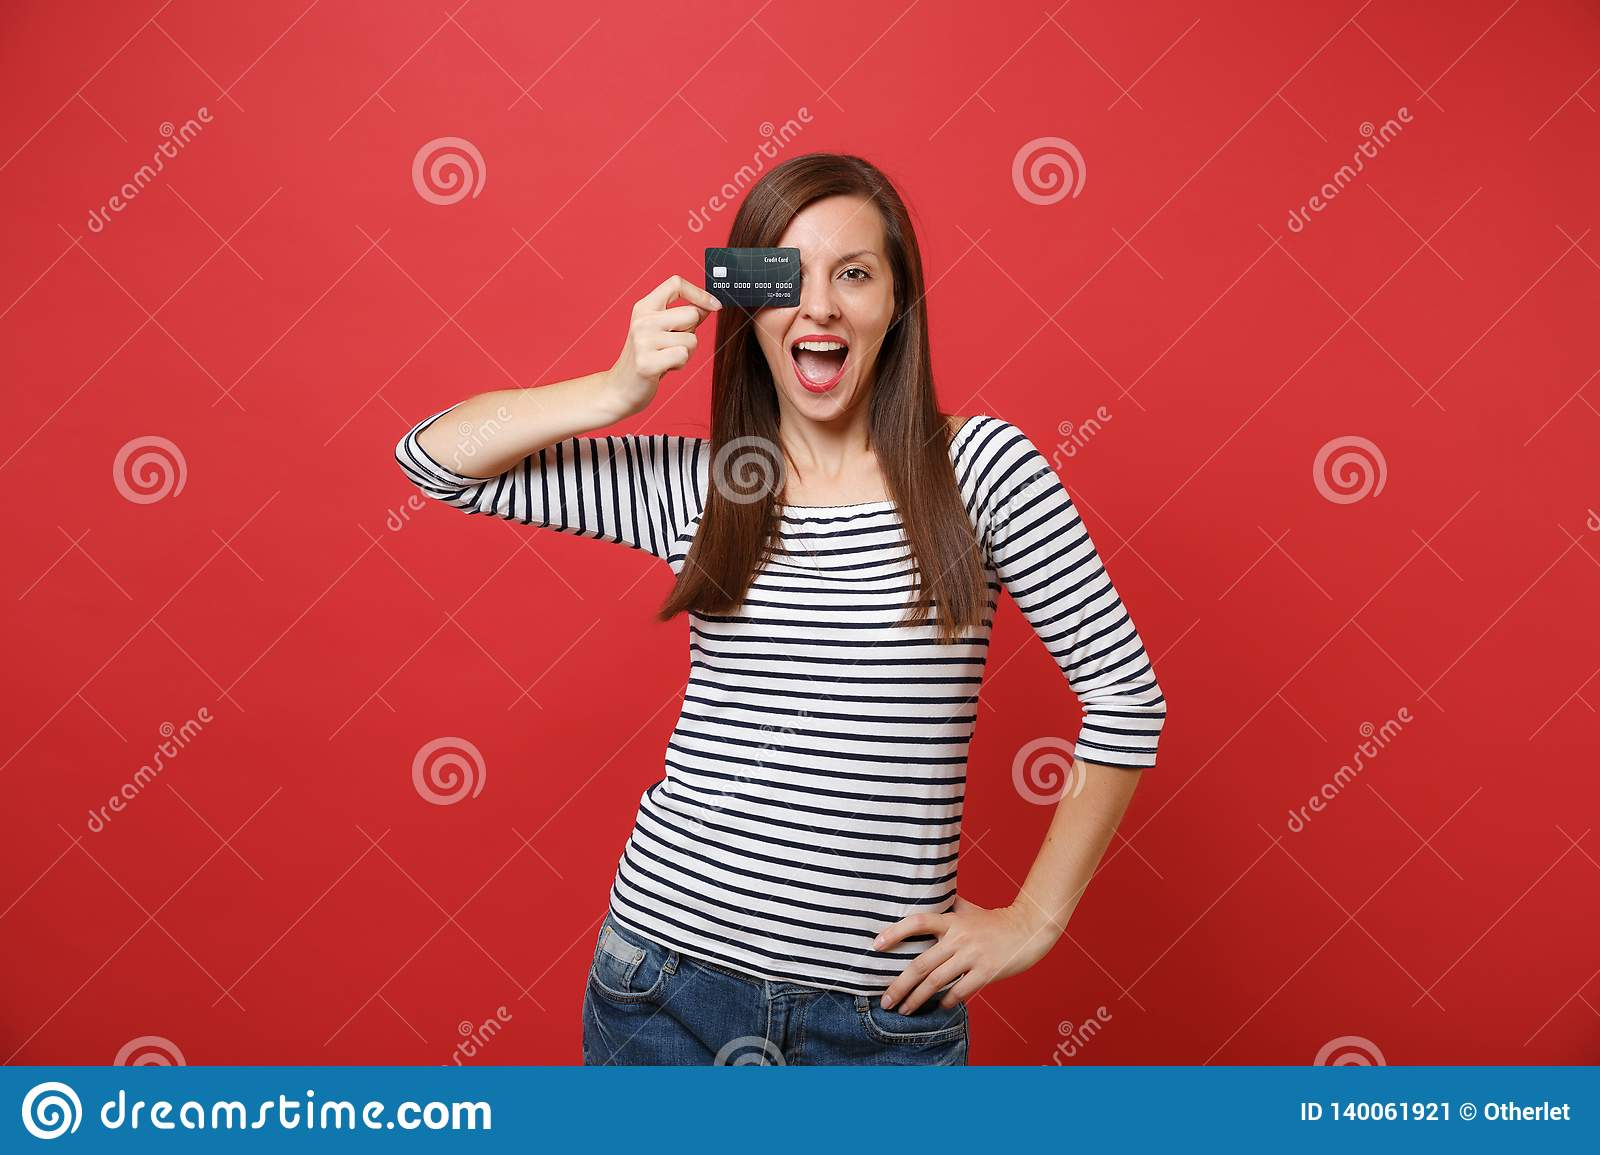 Excited young woman keeping mouth wide open, looking surprised, covering eye with credit card isolated on bright red